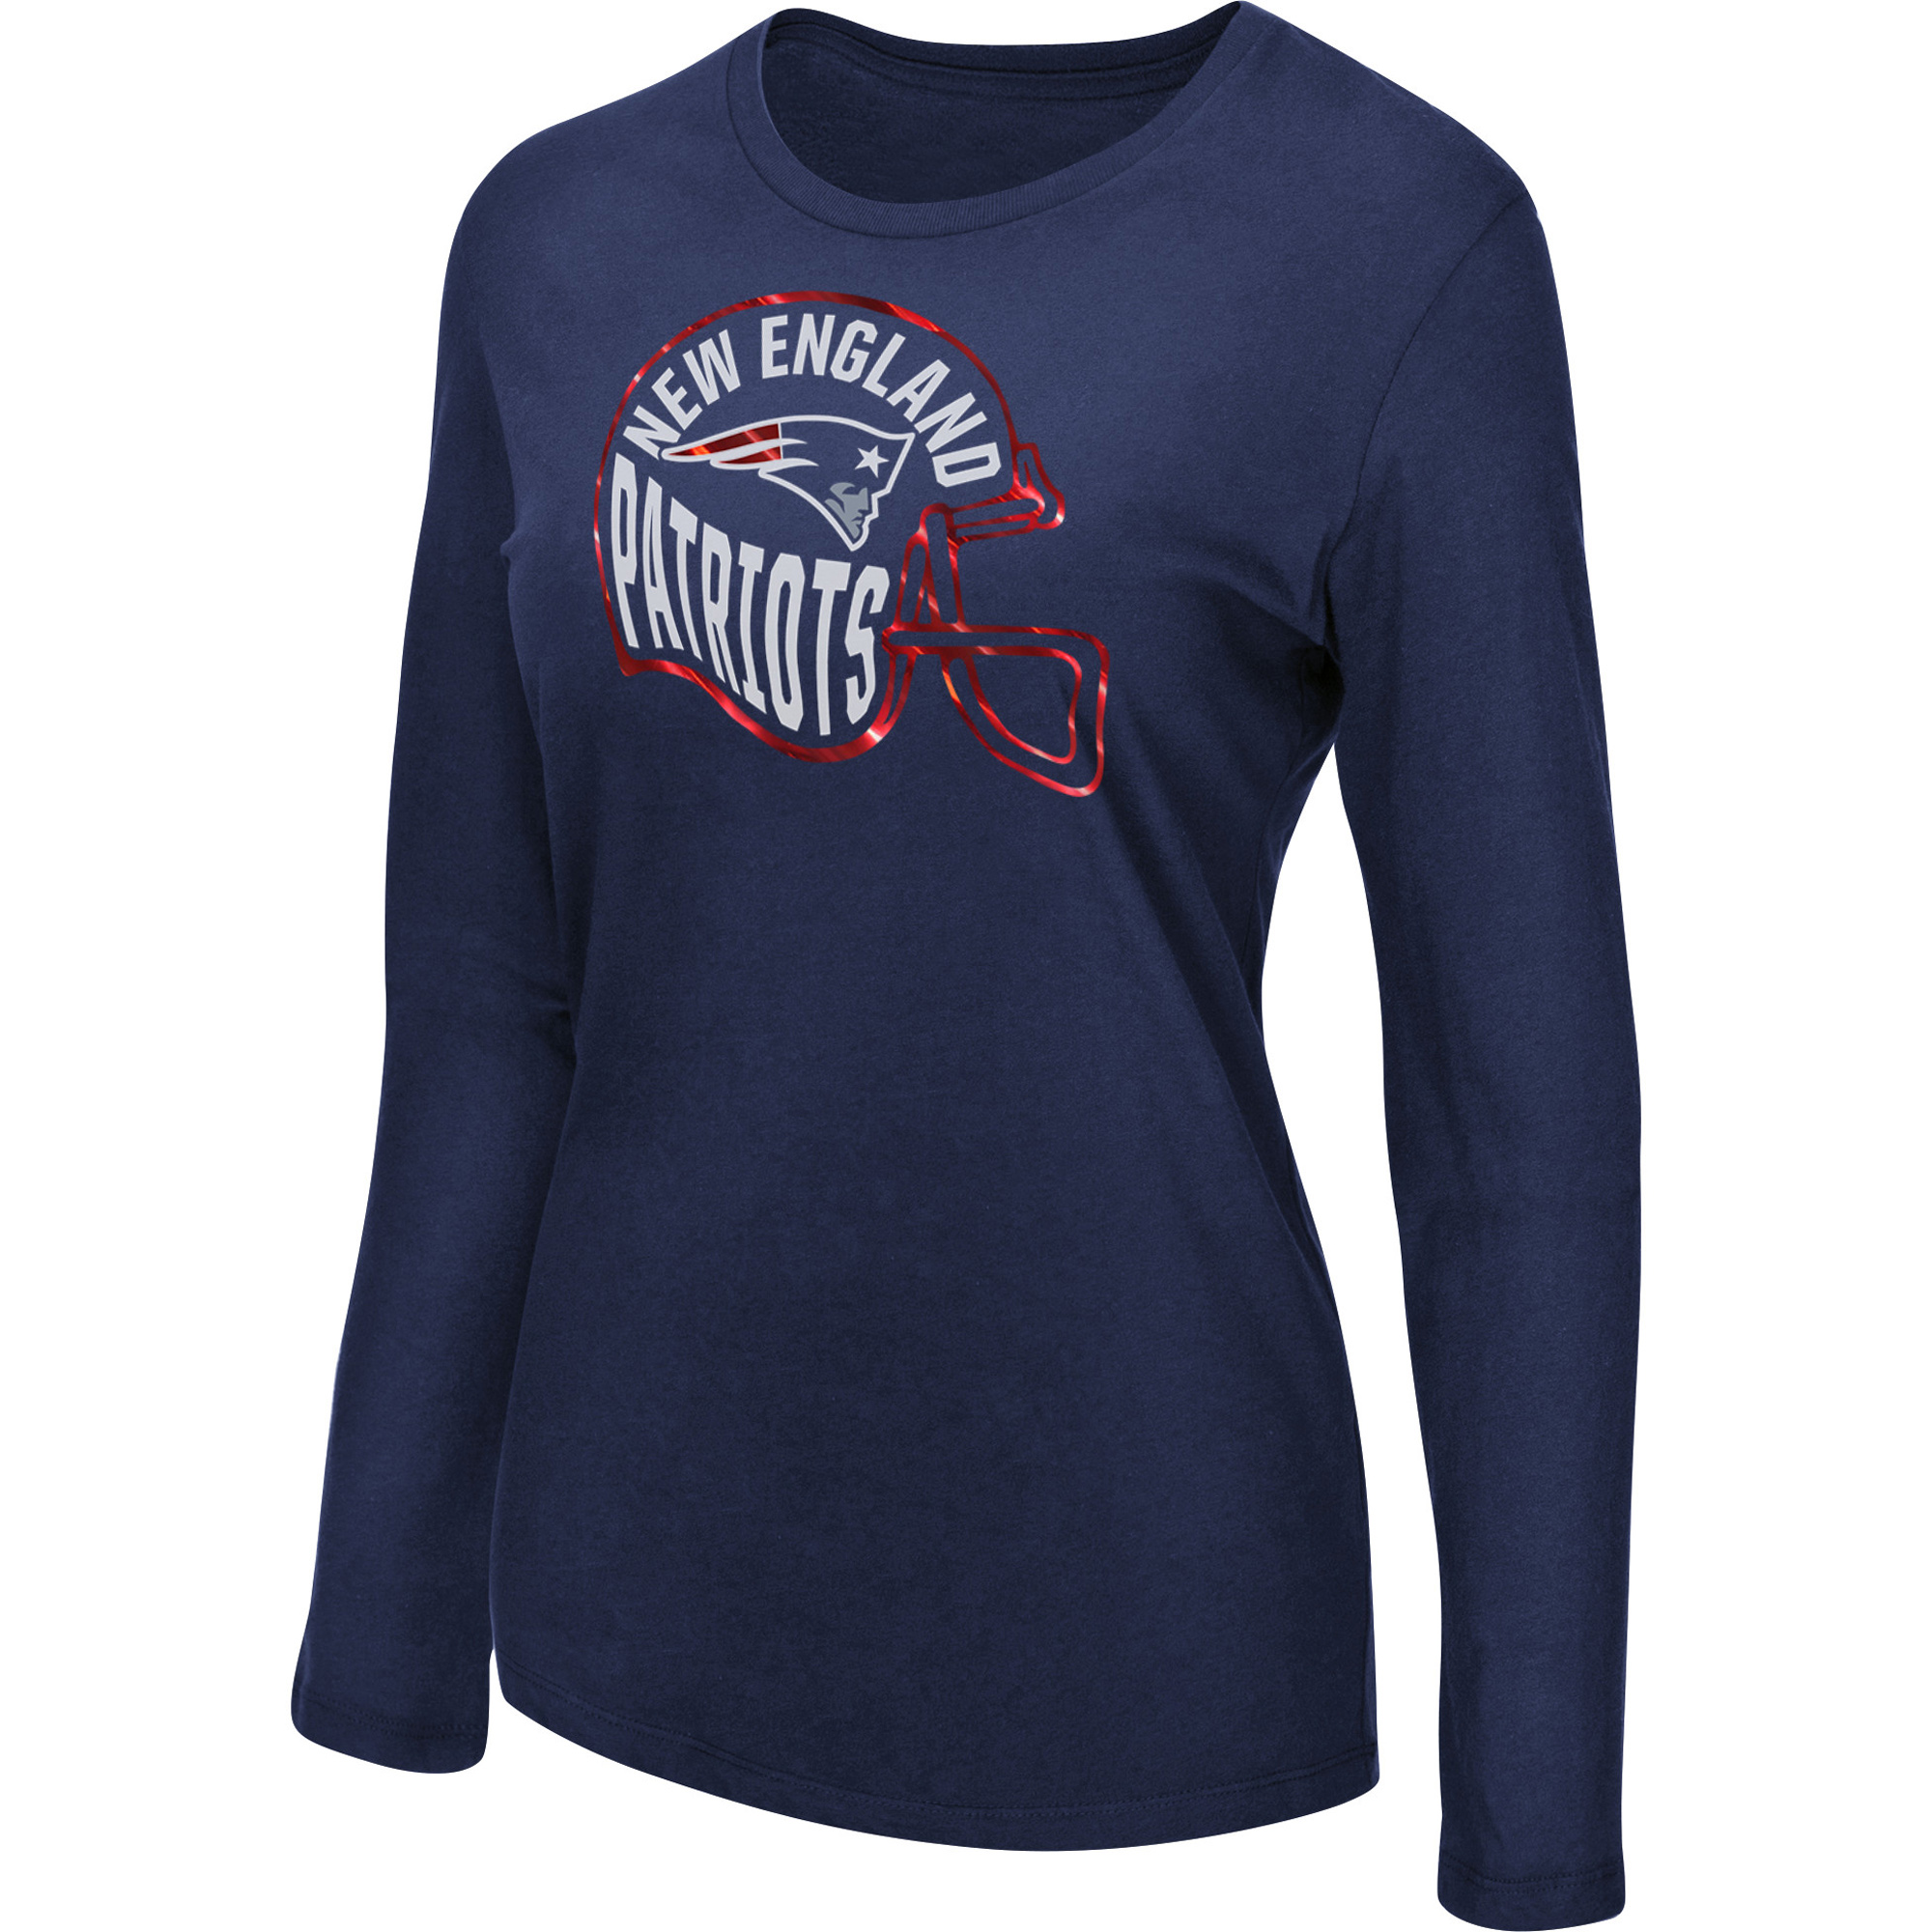 Women's Majestic Navy New England Patriots Turn it Loose Long Sleeve T-Shirt